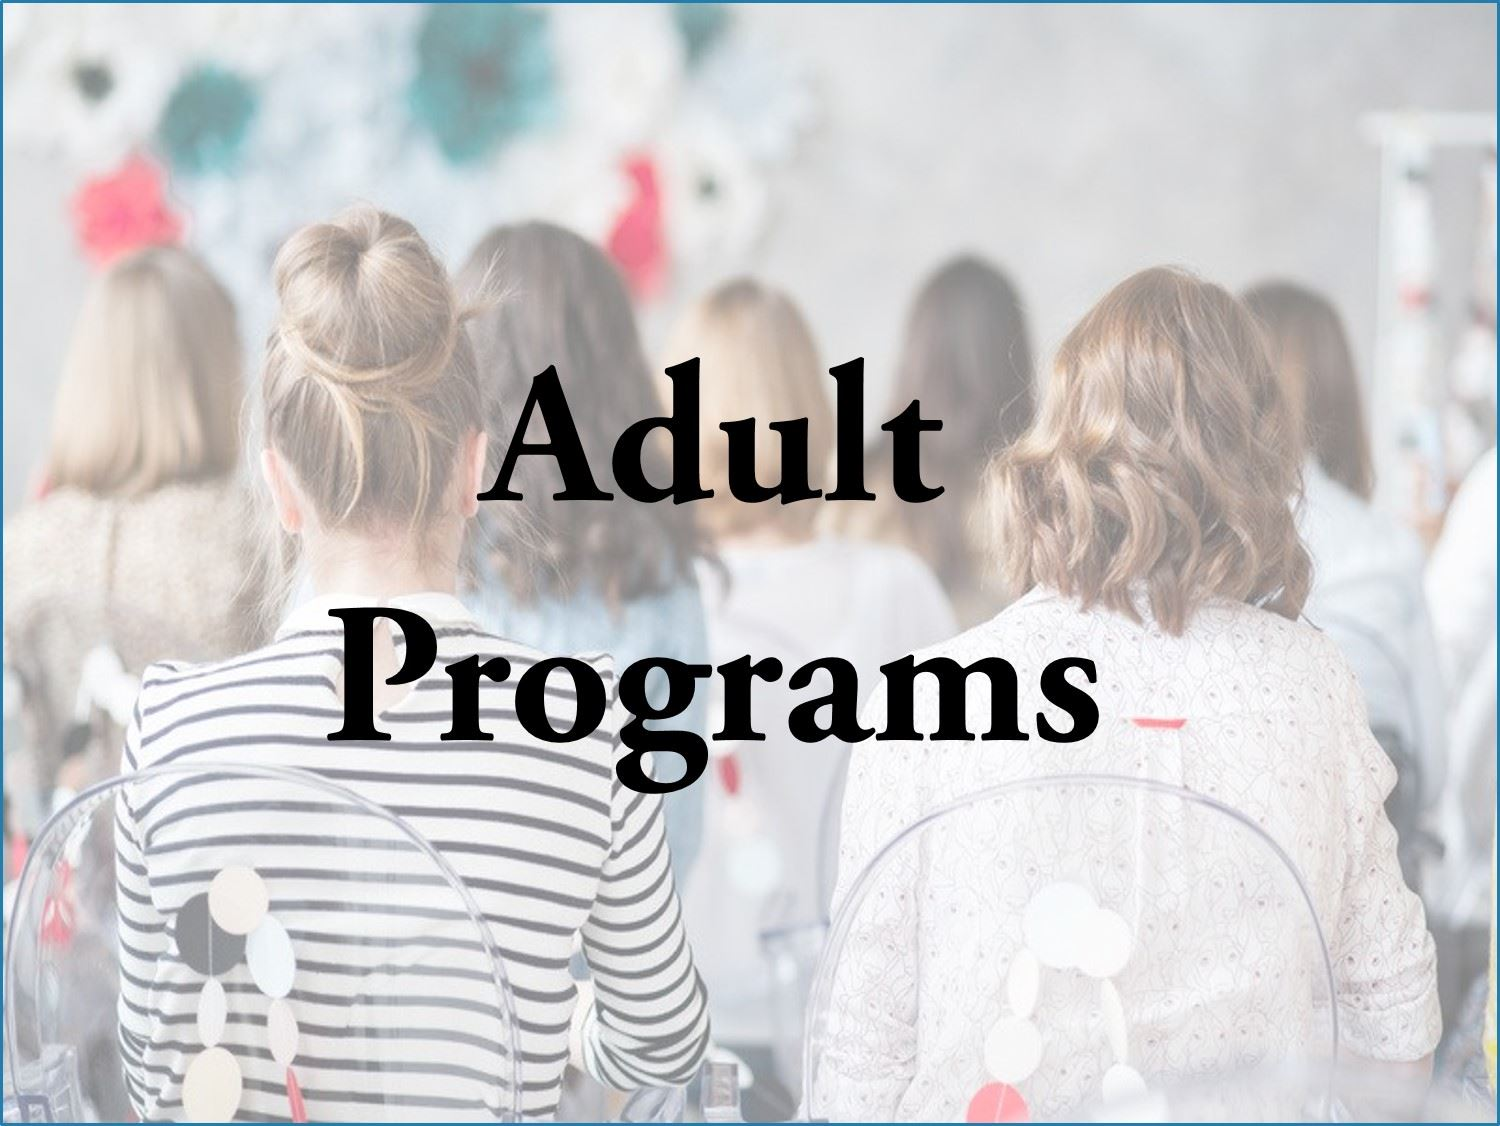 Adult Programs Block